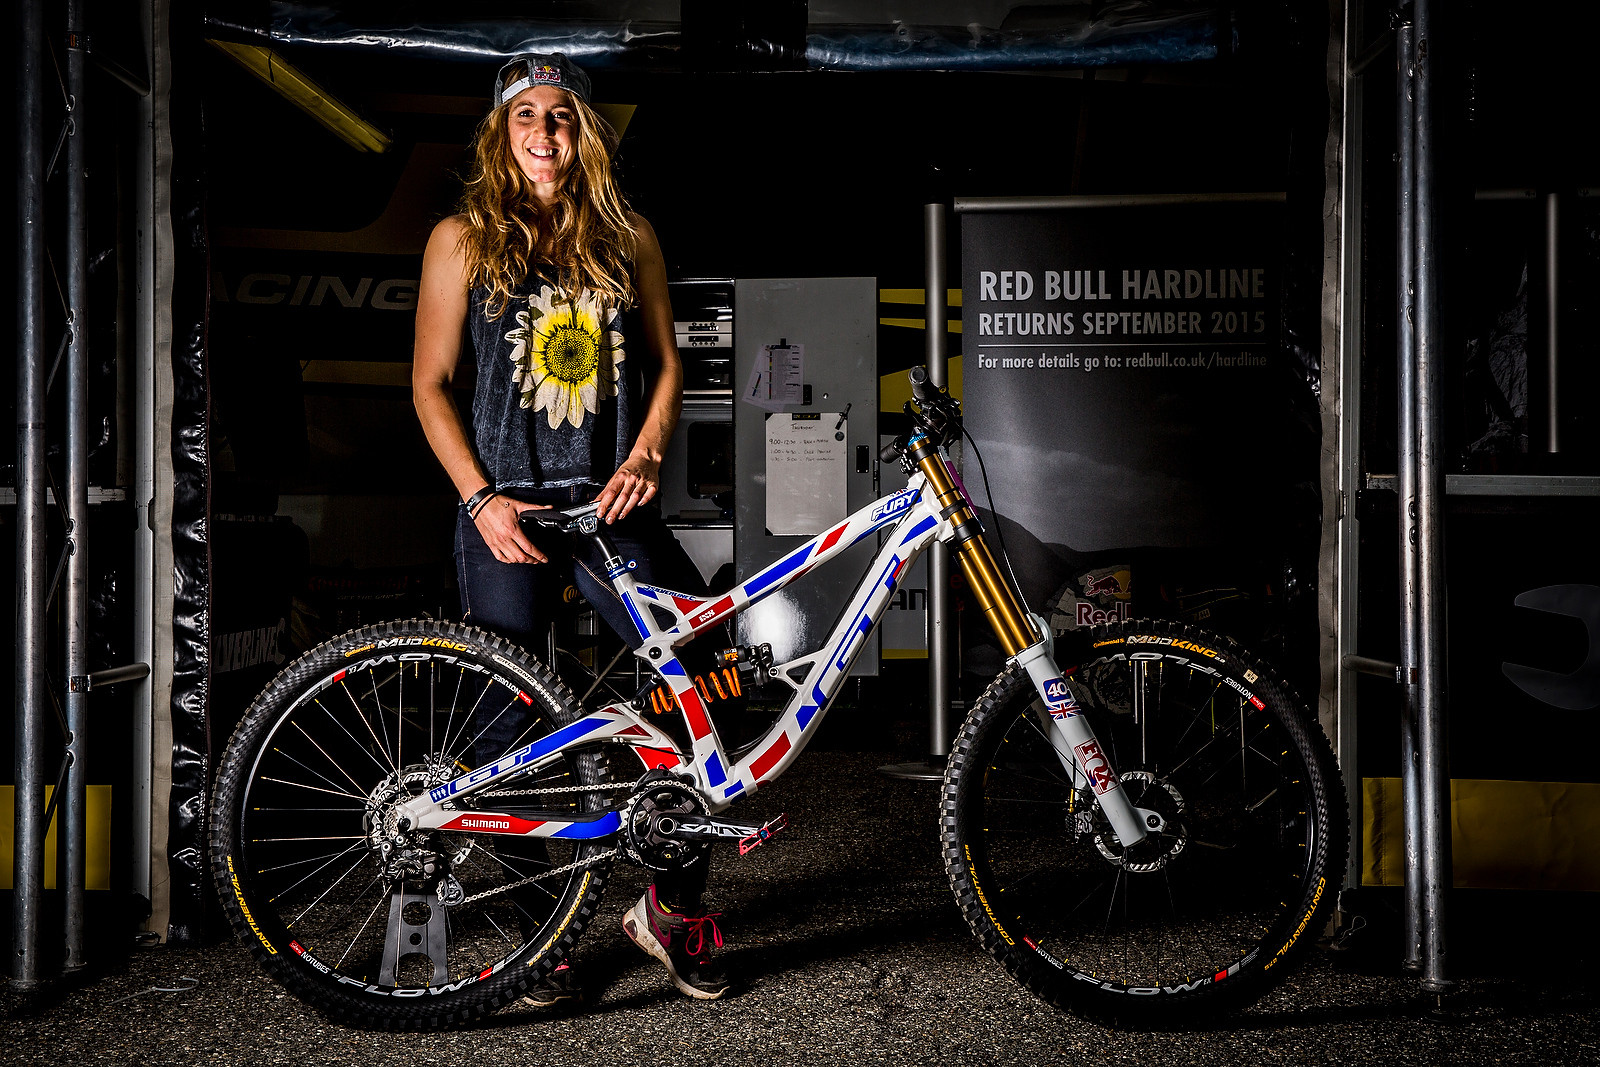 WINNING BIKE: Rachel Atherton's GT Fury for World Champs - WINNING BIKE: Rachel Atherton's GT Fury for World Champs - Mountain Biking Pictures - Vital MTB